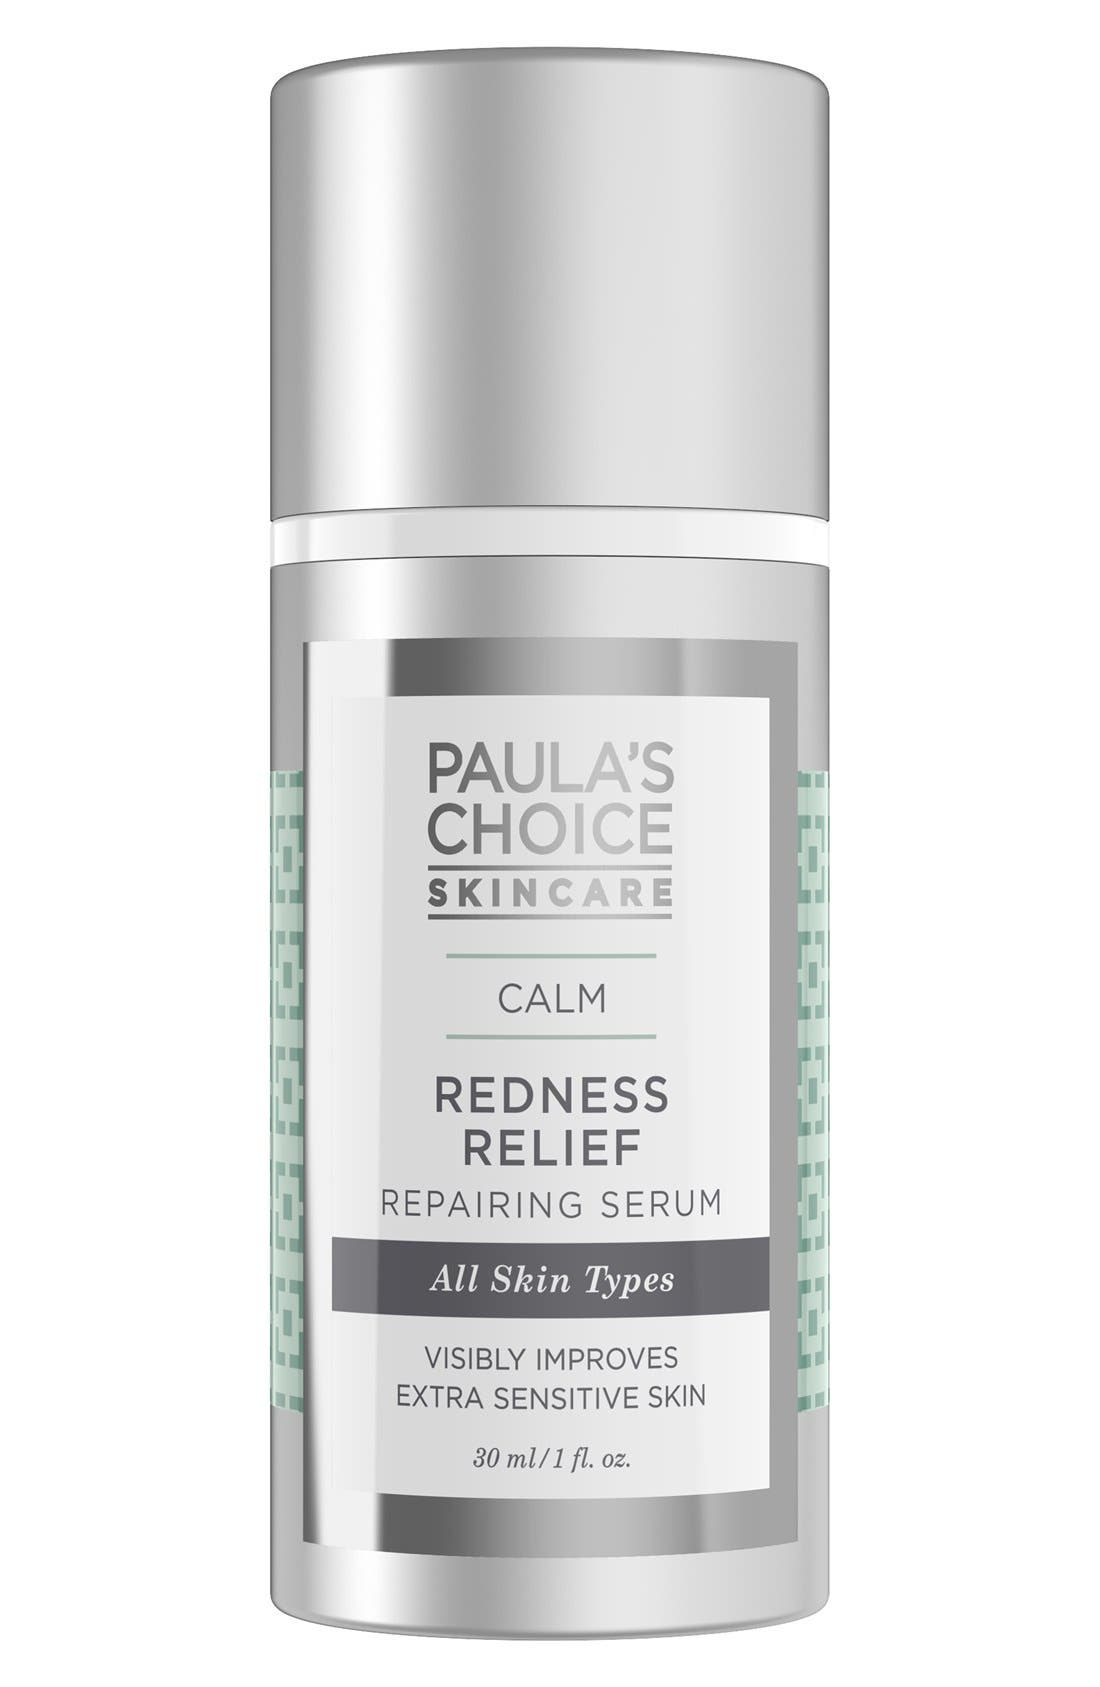 Paula's Choice Calm Redness Relief Repairing Serum